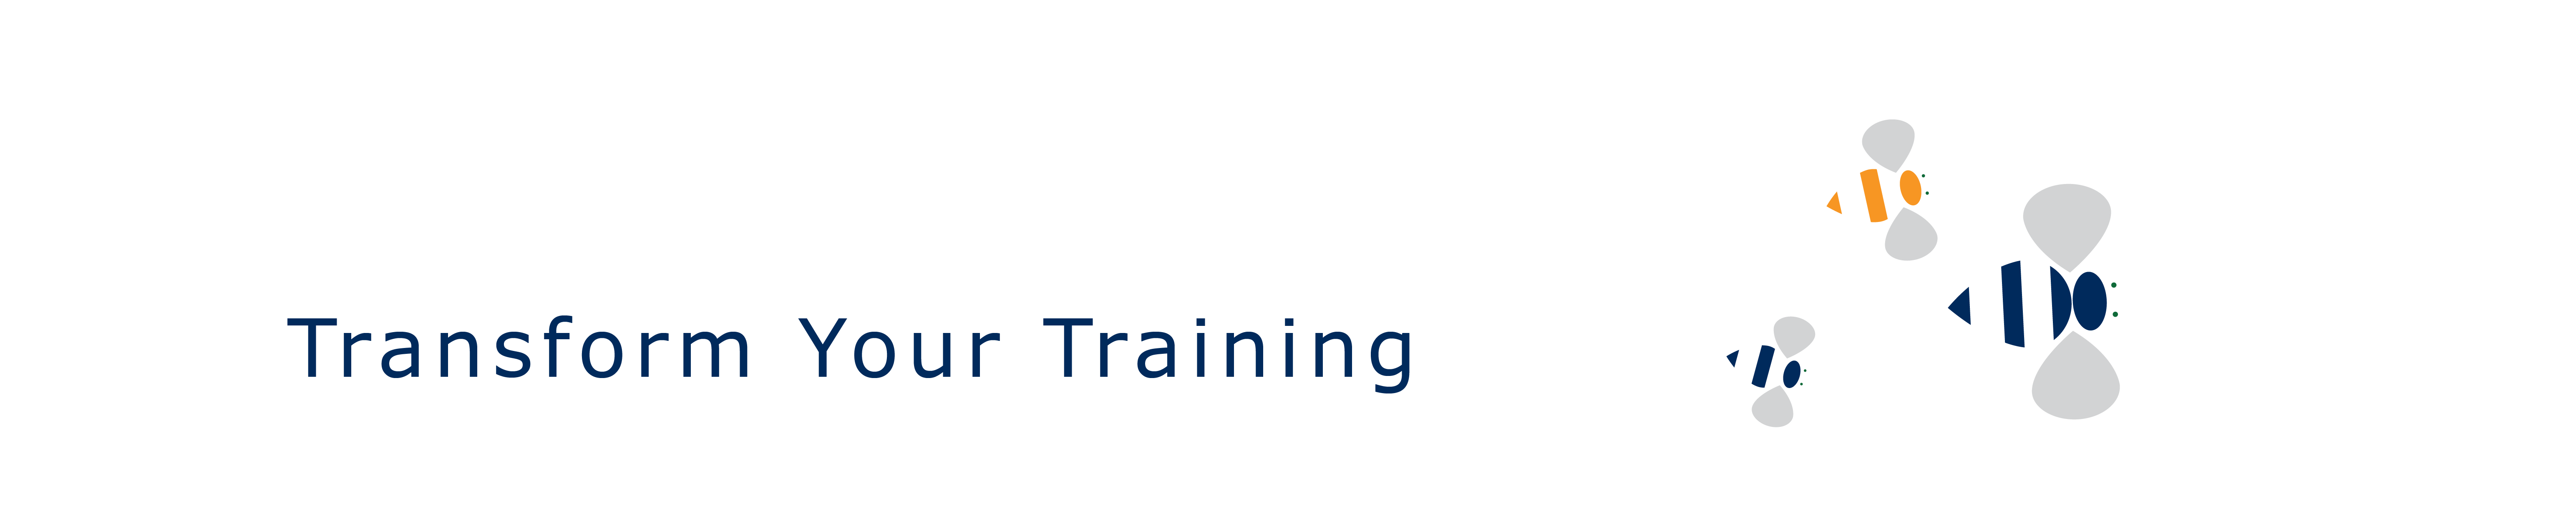 Trainers' Library providing effective learning solutions